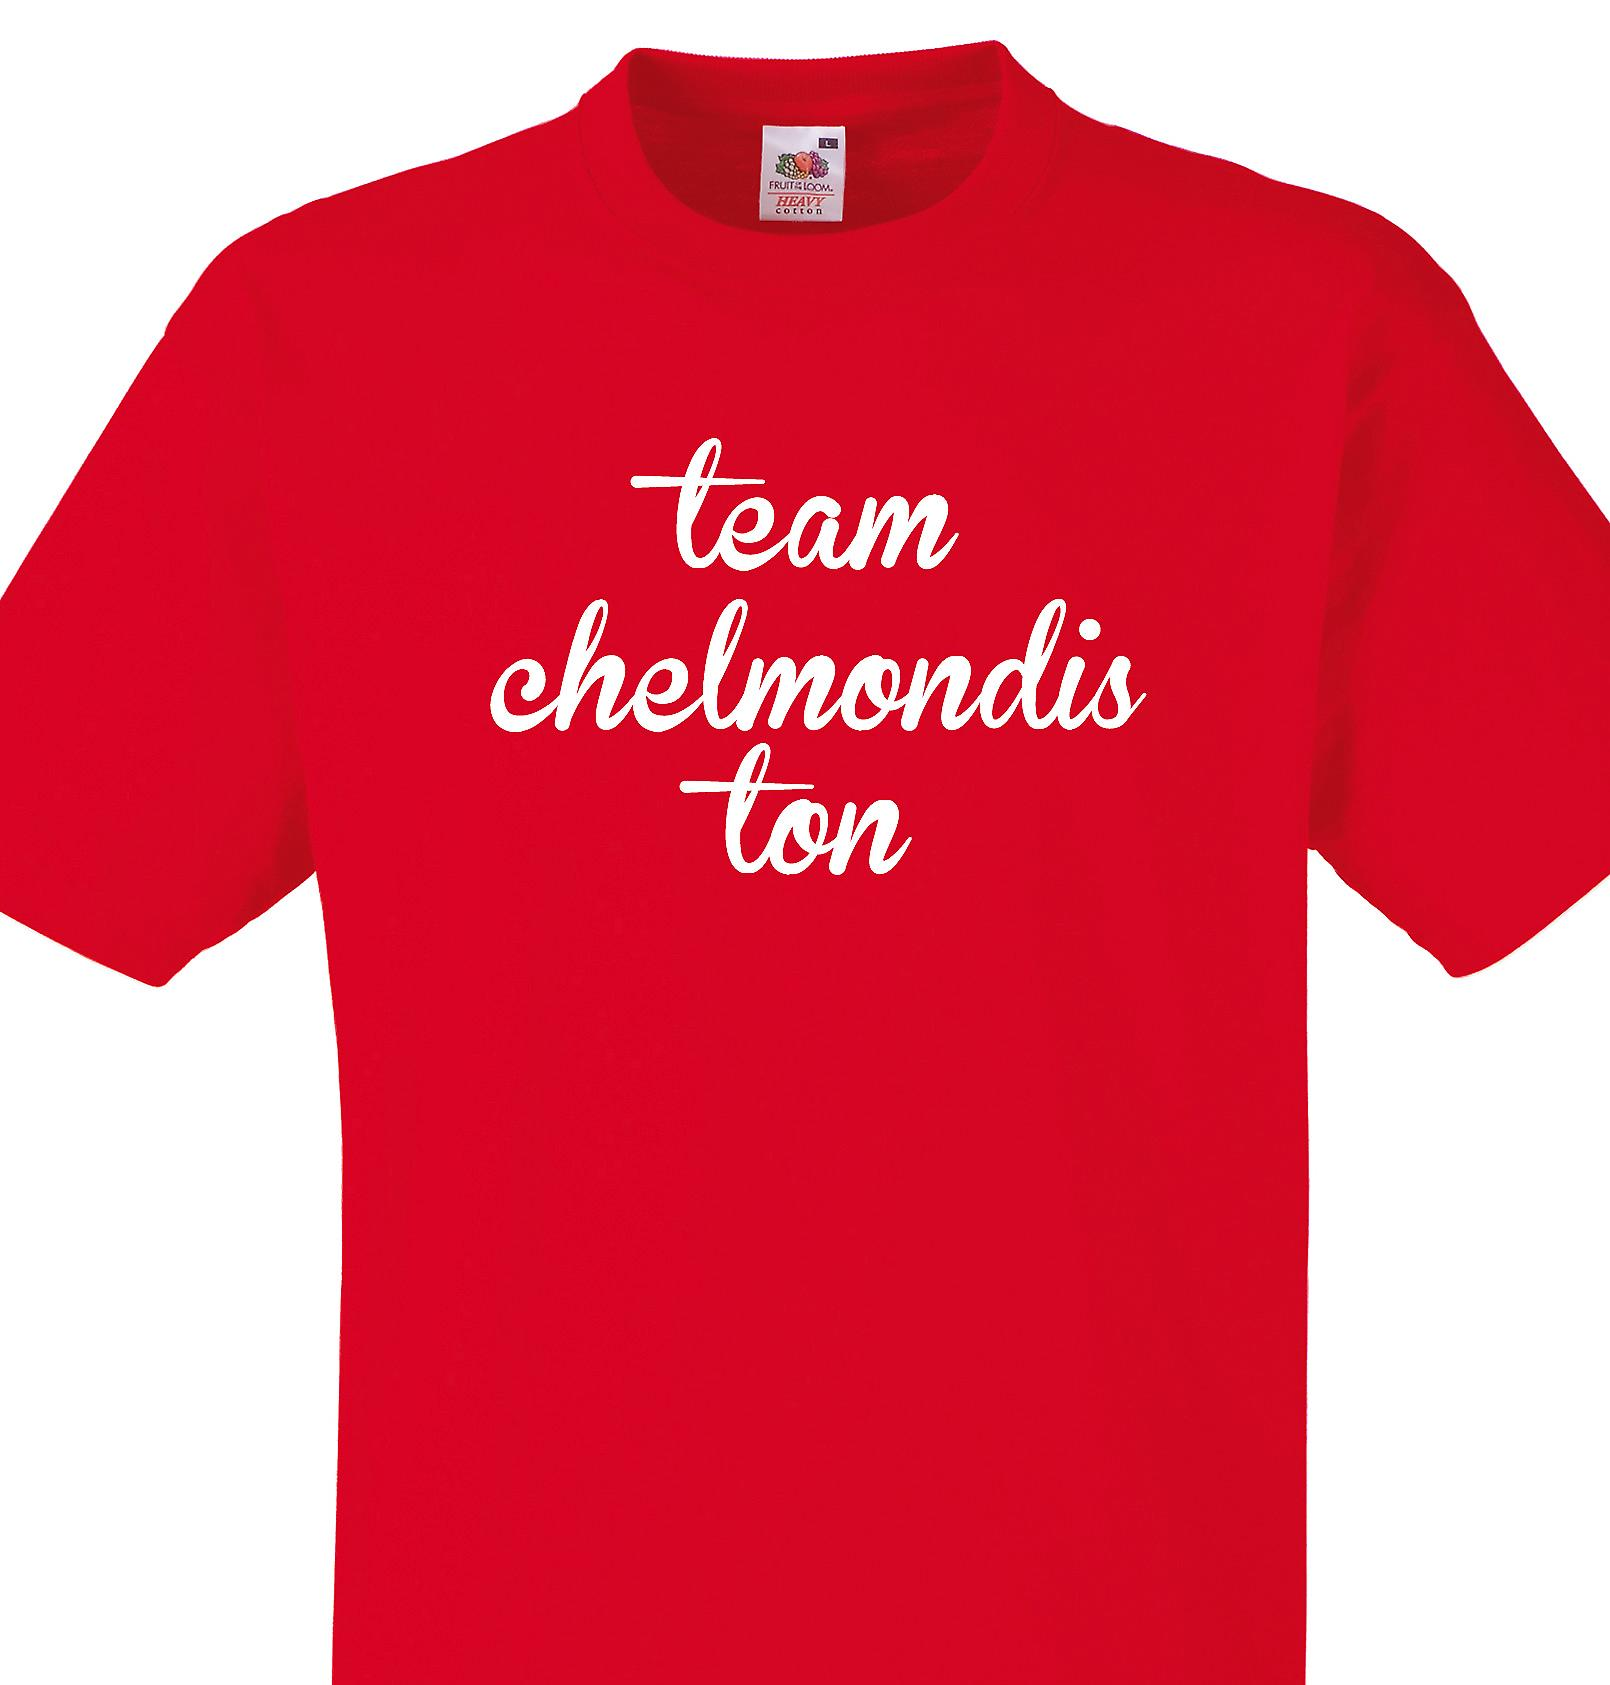 Team Chelmondiston Red T shirt